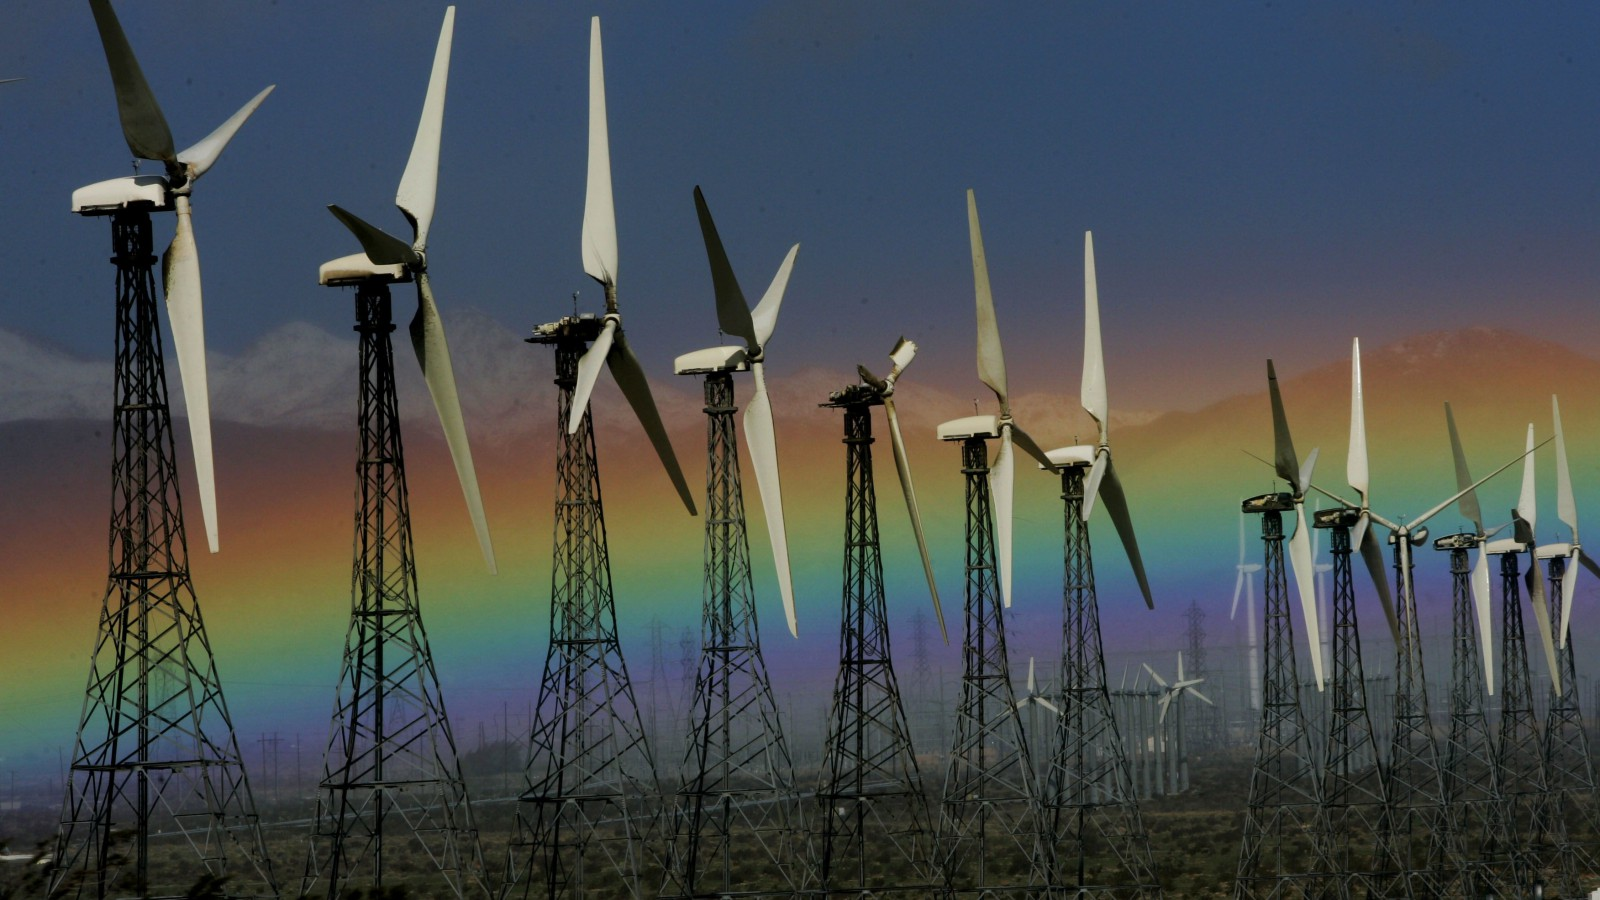 This Jan. 28, 2008 file photo shows a rainbow visible looking West from Palm Springs, Calif. next to an array of wind turbines. Interior Secretary Sally Jewell on Tuesday, Sept. 23, 2014, unveiled a proposed roadmap for developing massive solar and wind projects in California's Mojave Desert.